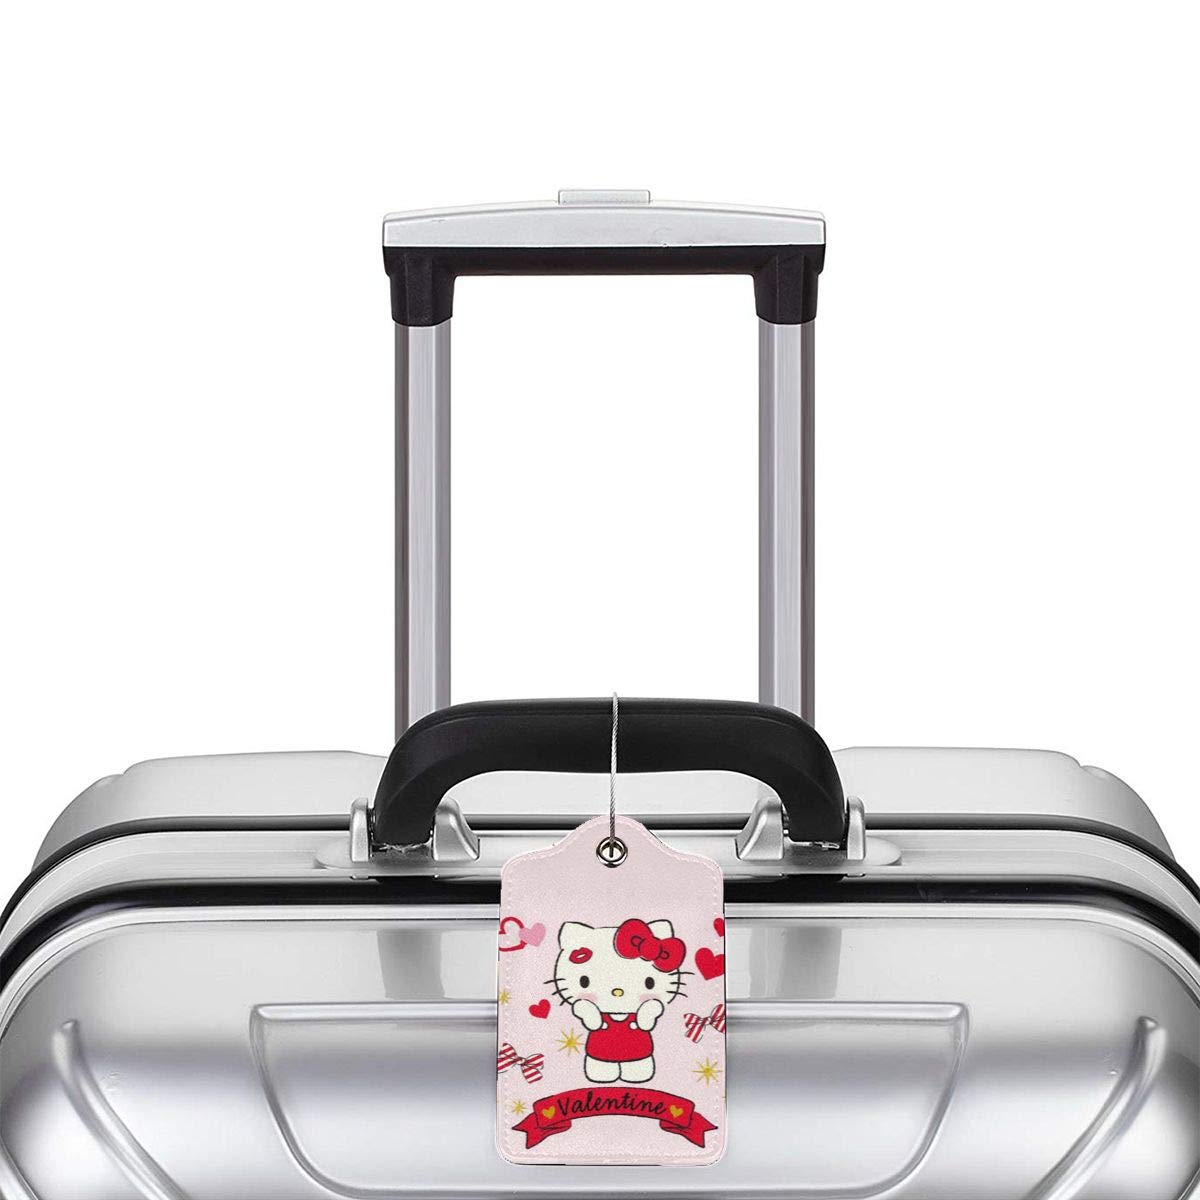 Suit For Travel,Vacation Fashion Hello Kitty Love Heart Soft Leather Luggage Tags With Privacy Cover 1-4 Pcs Choose